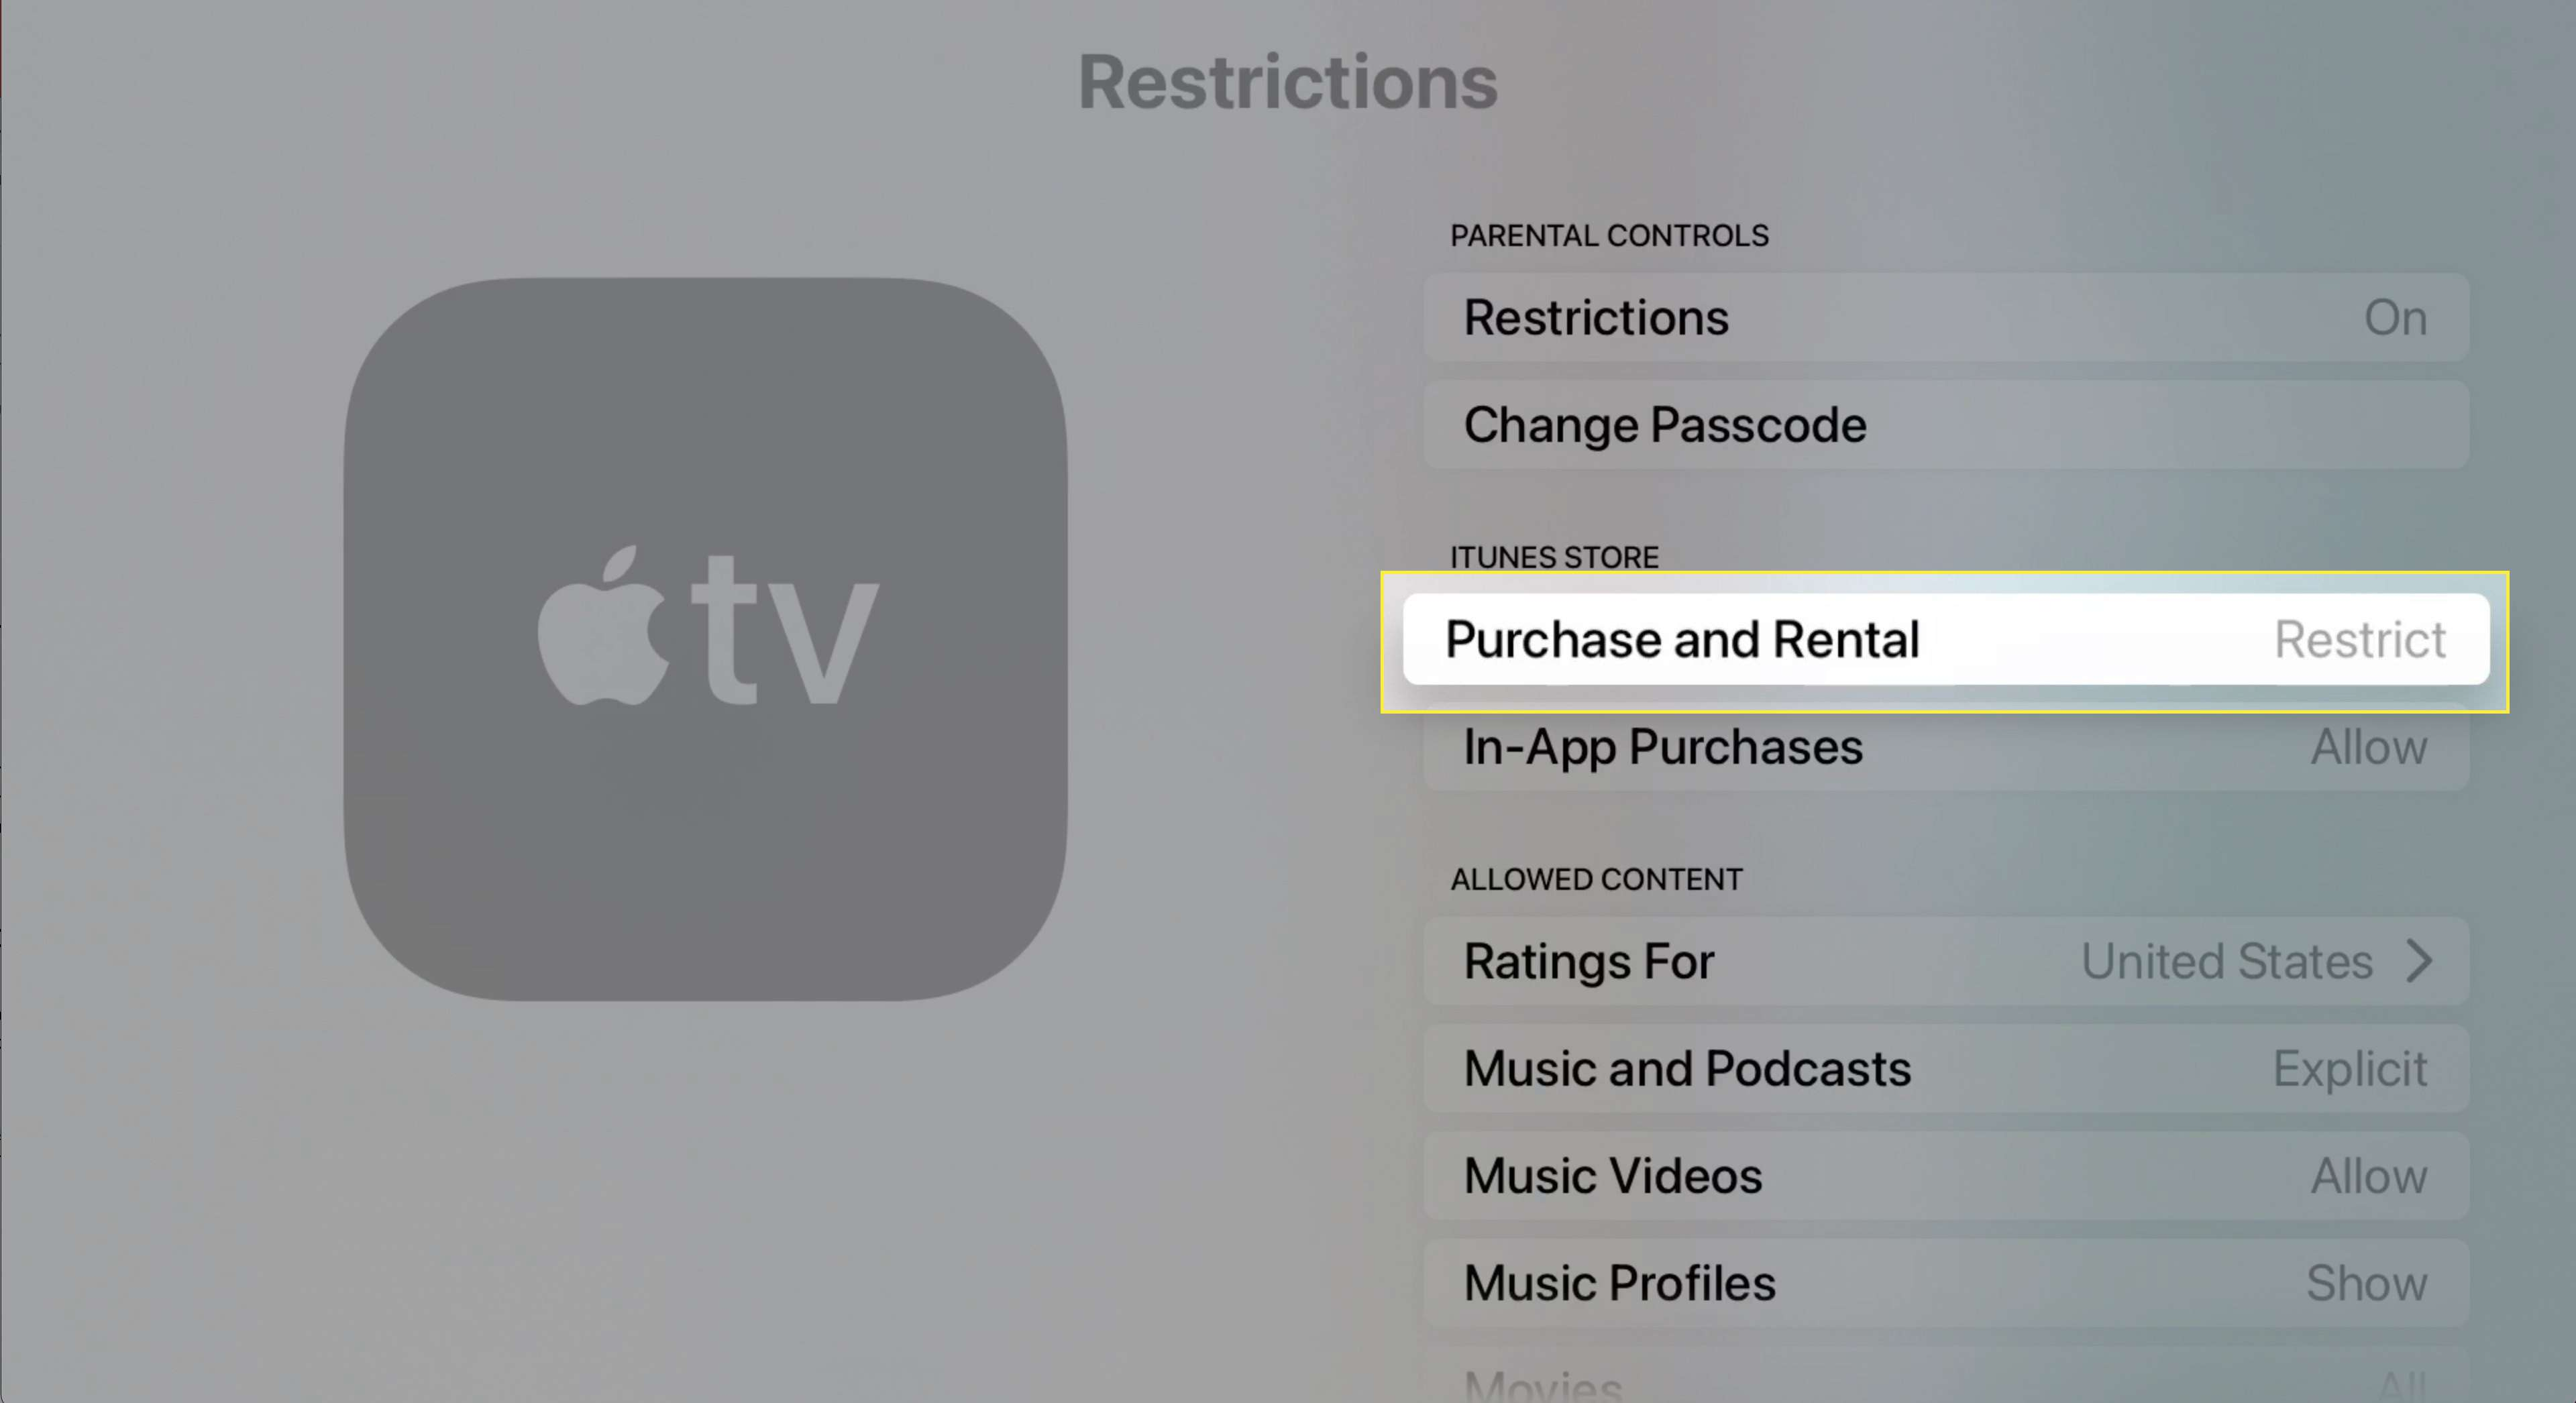 Apple TV restrictions settings with Purchase and Rental Restrict highlighted